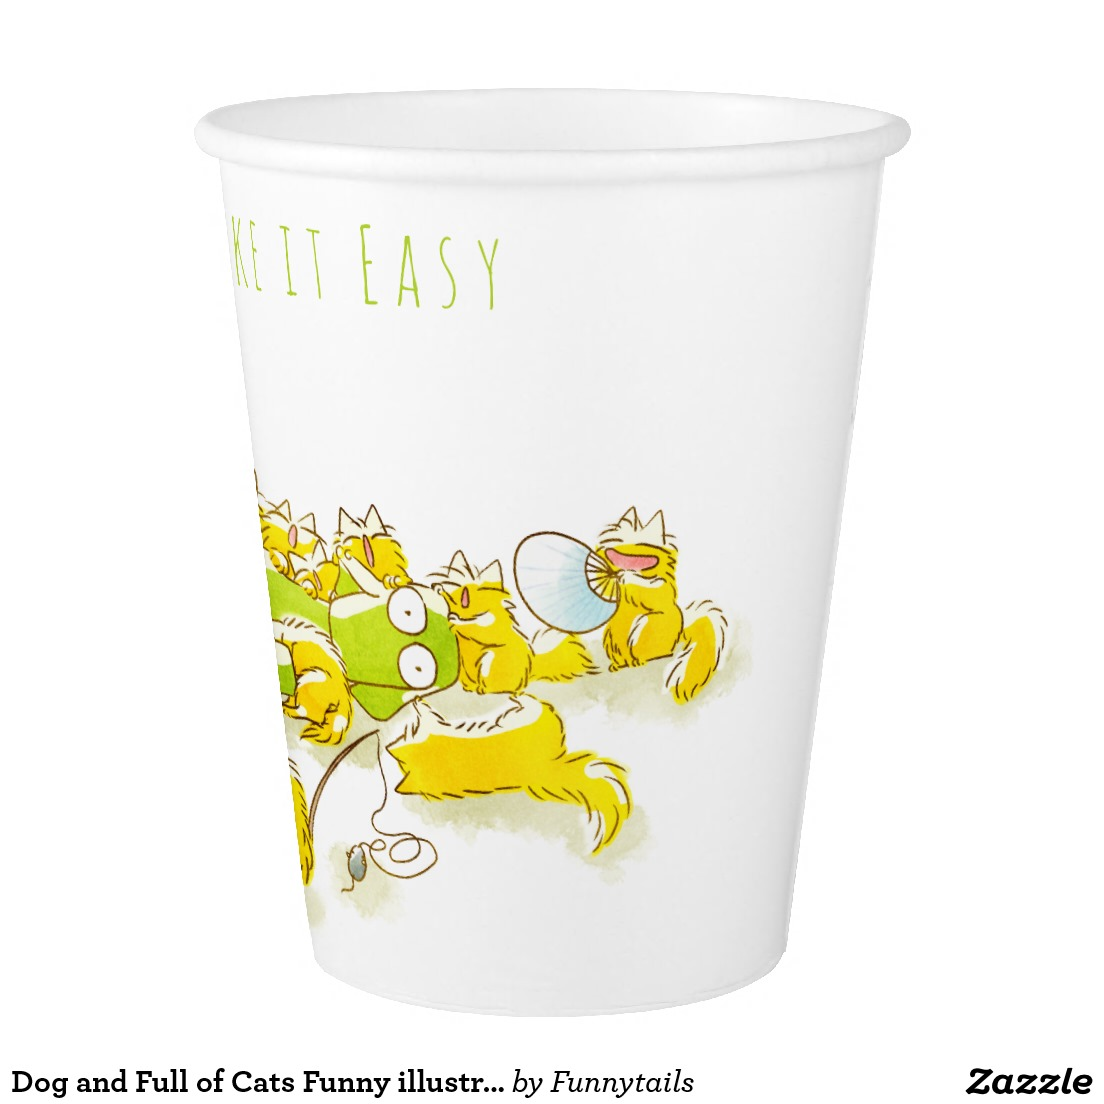 Dog and Full of Cats Funny illustration Paper Cup3